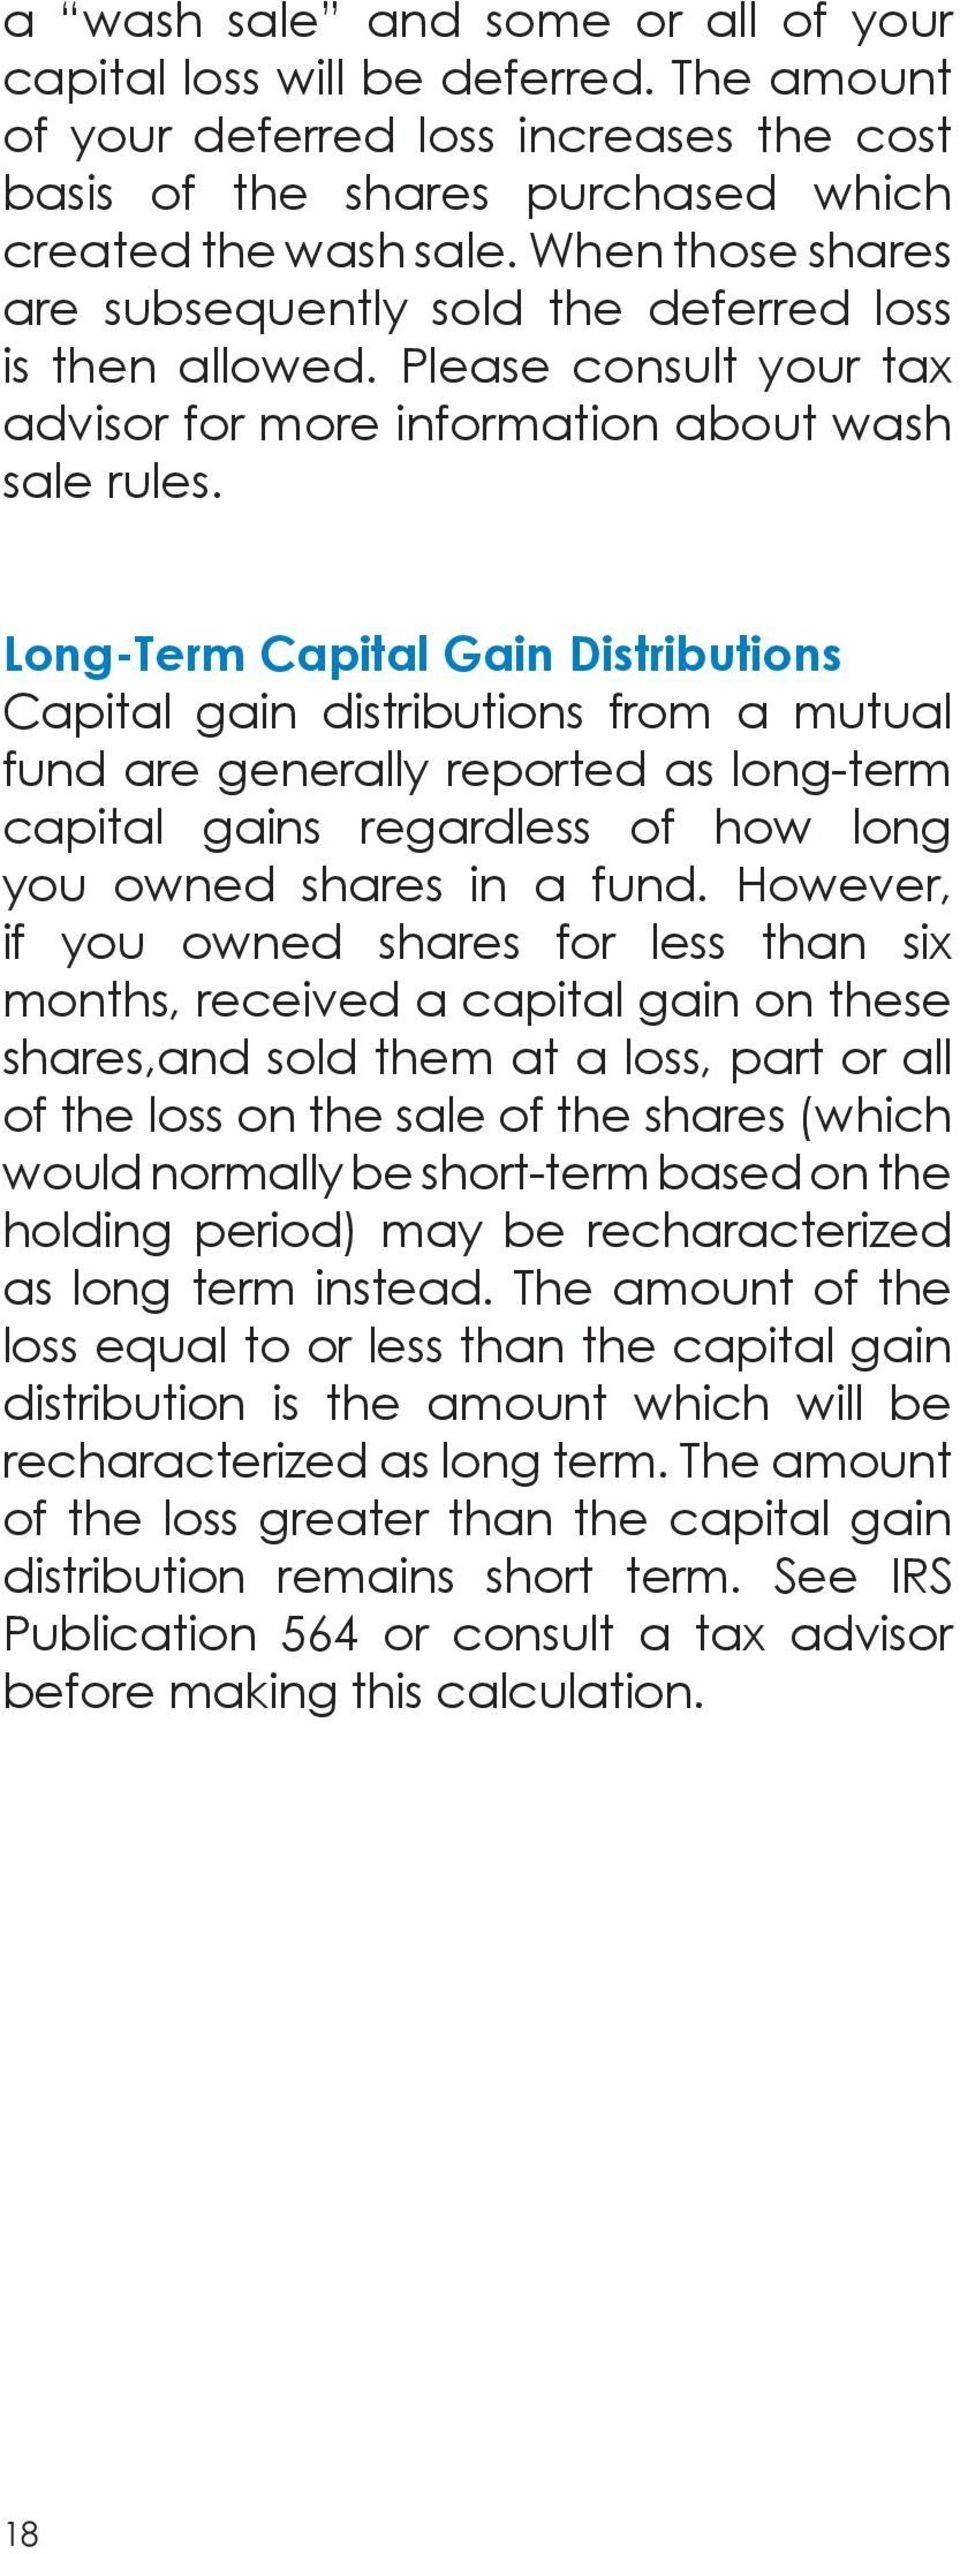 Long-Term Capital Gain Distributions Capital gain distributions from a mutual fund are generally reported as long-term capital gains regardless of how long you owned shares in a fund.